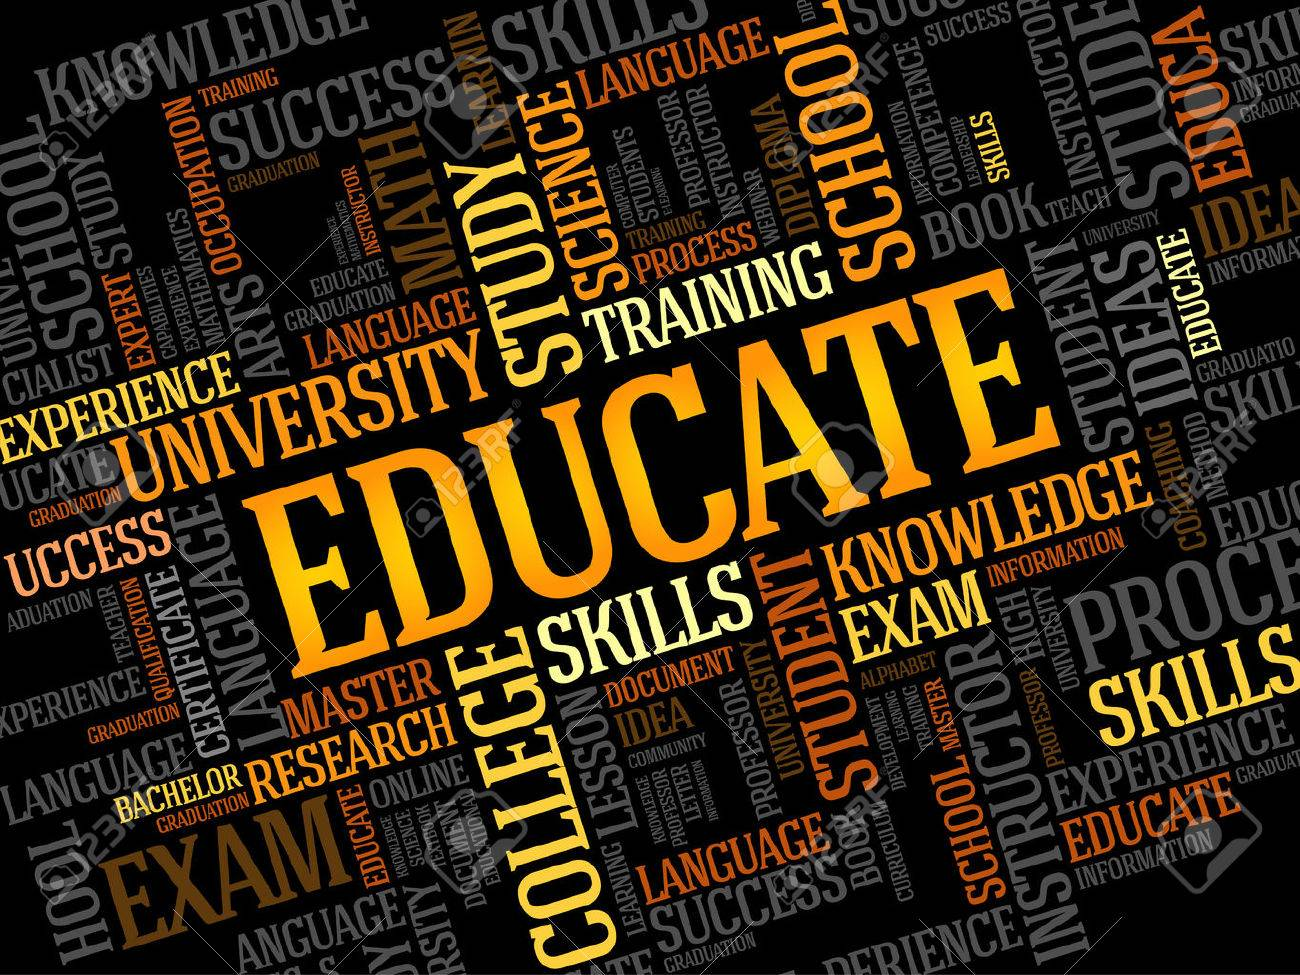 EDUCATE. Word education collage - 51099155